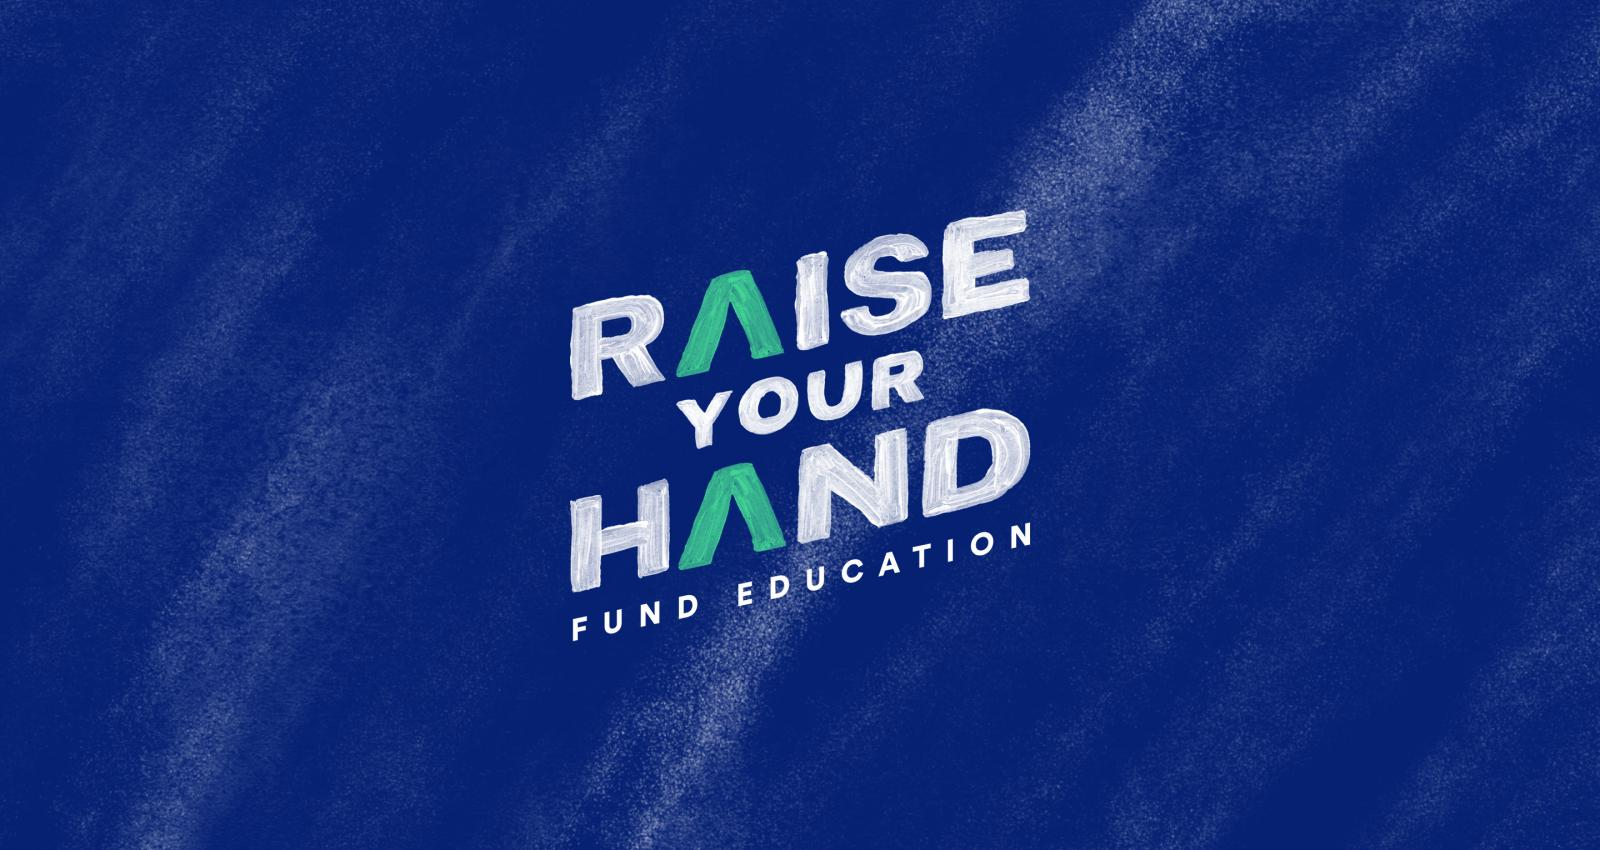 Raise your hand for education